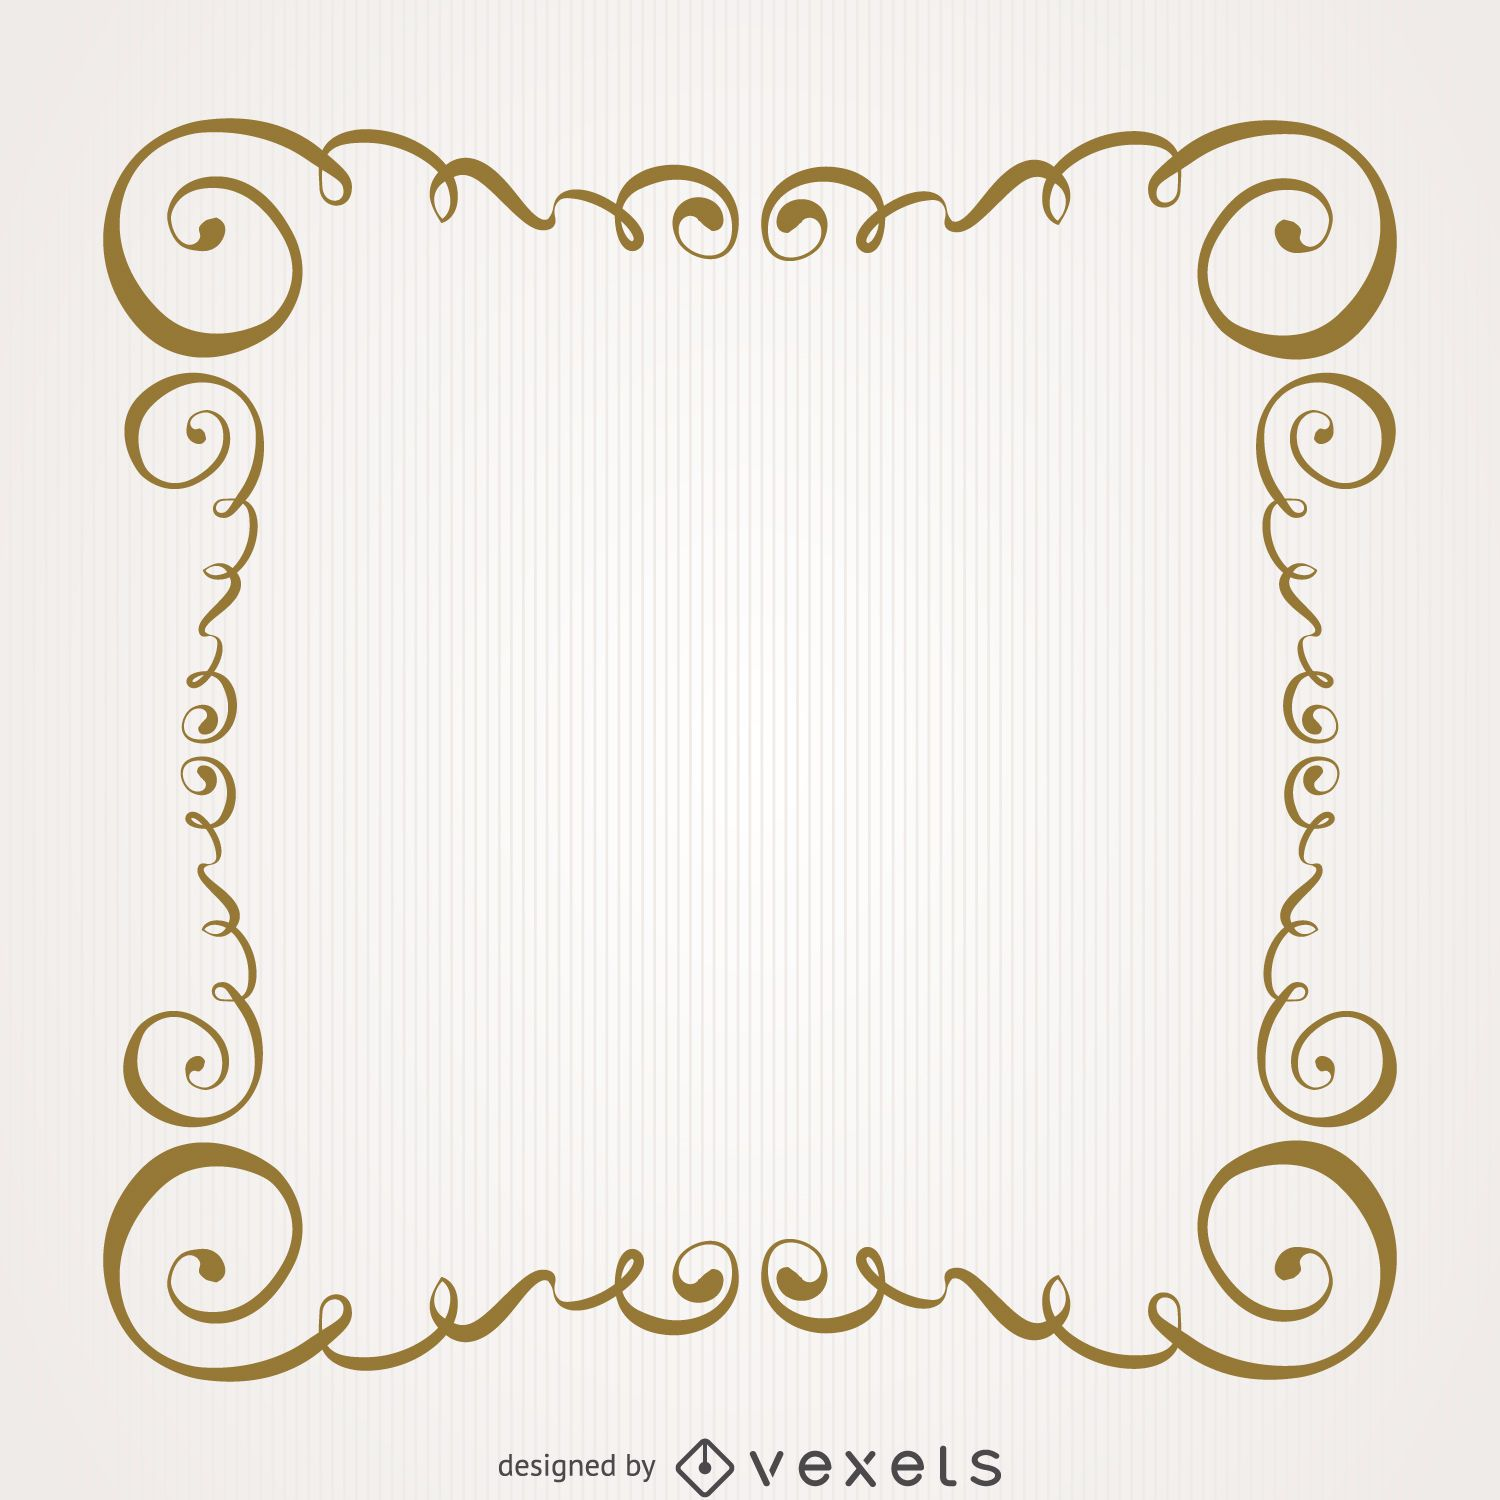 Vintage gold swirls frame - Vector download